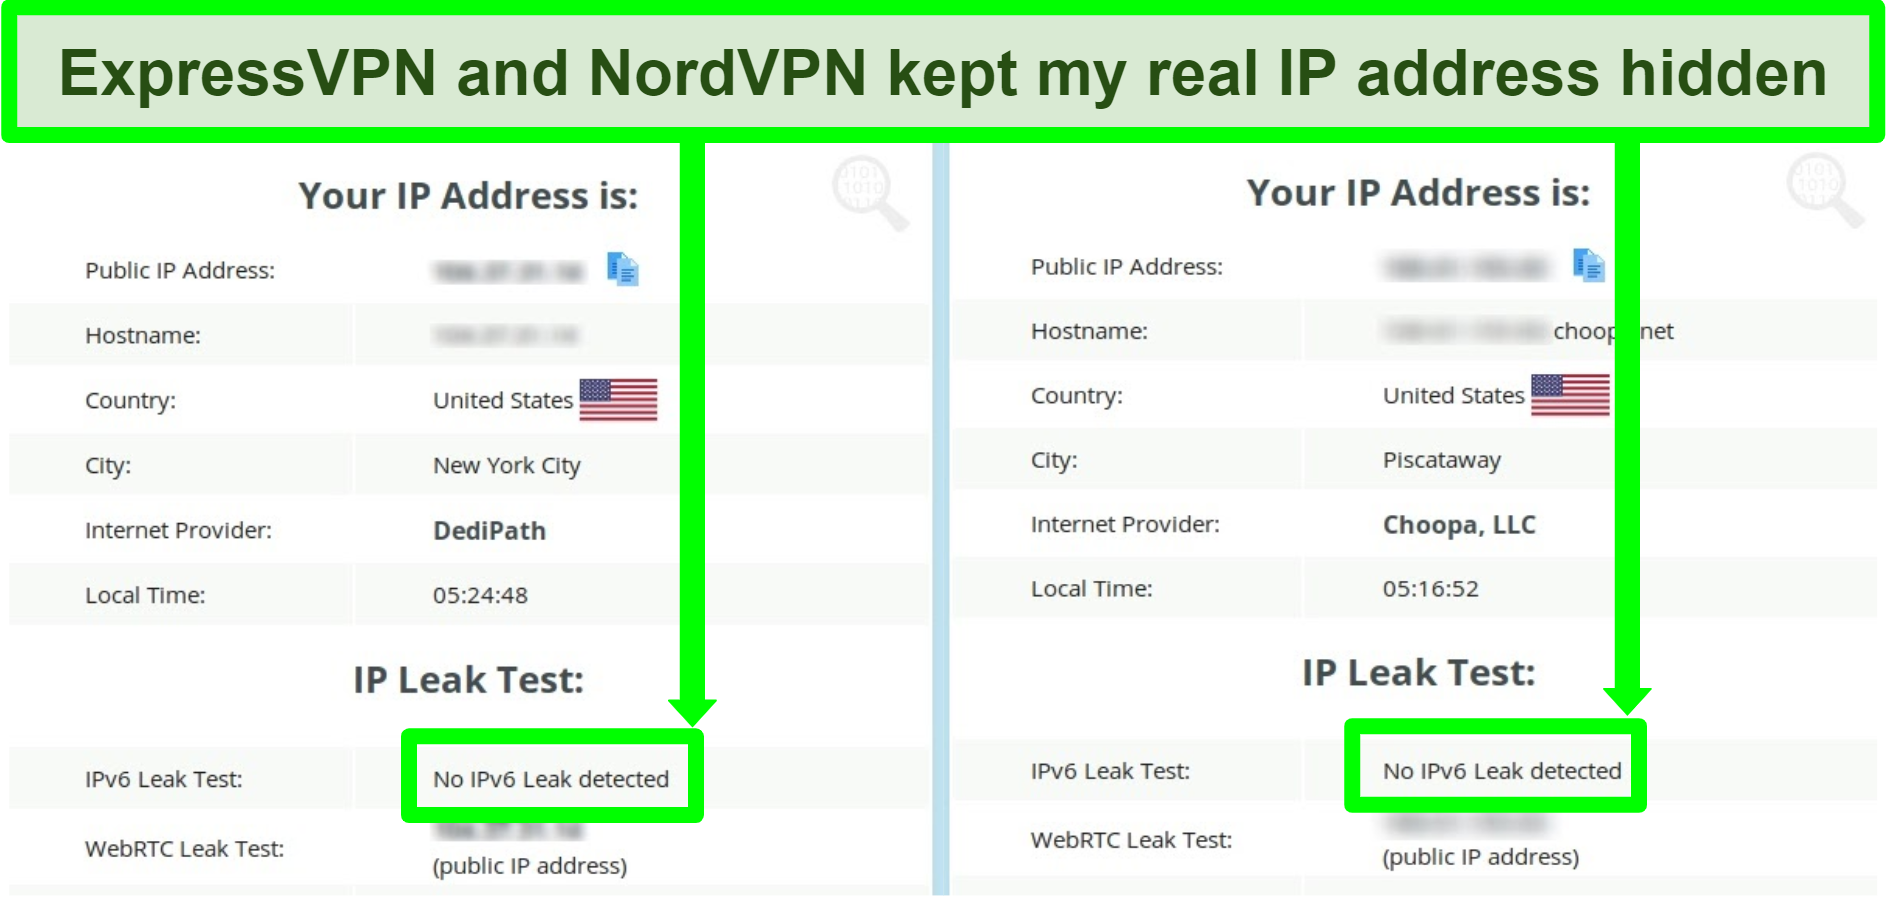 Screenshot showing no IPv6 leak detected for both NordVPN and ExpressVPN